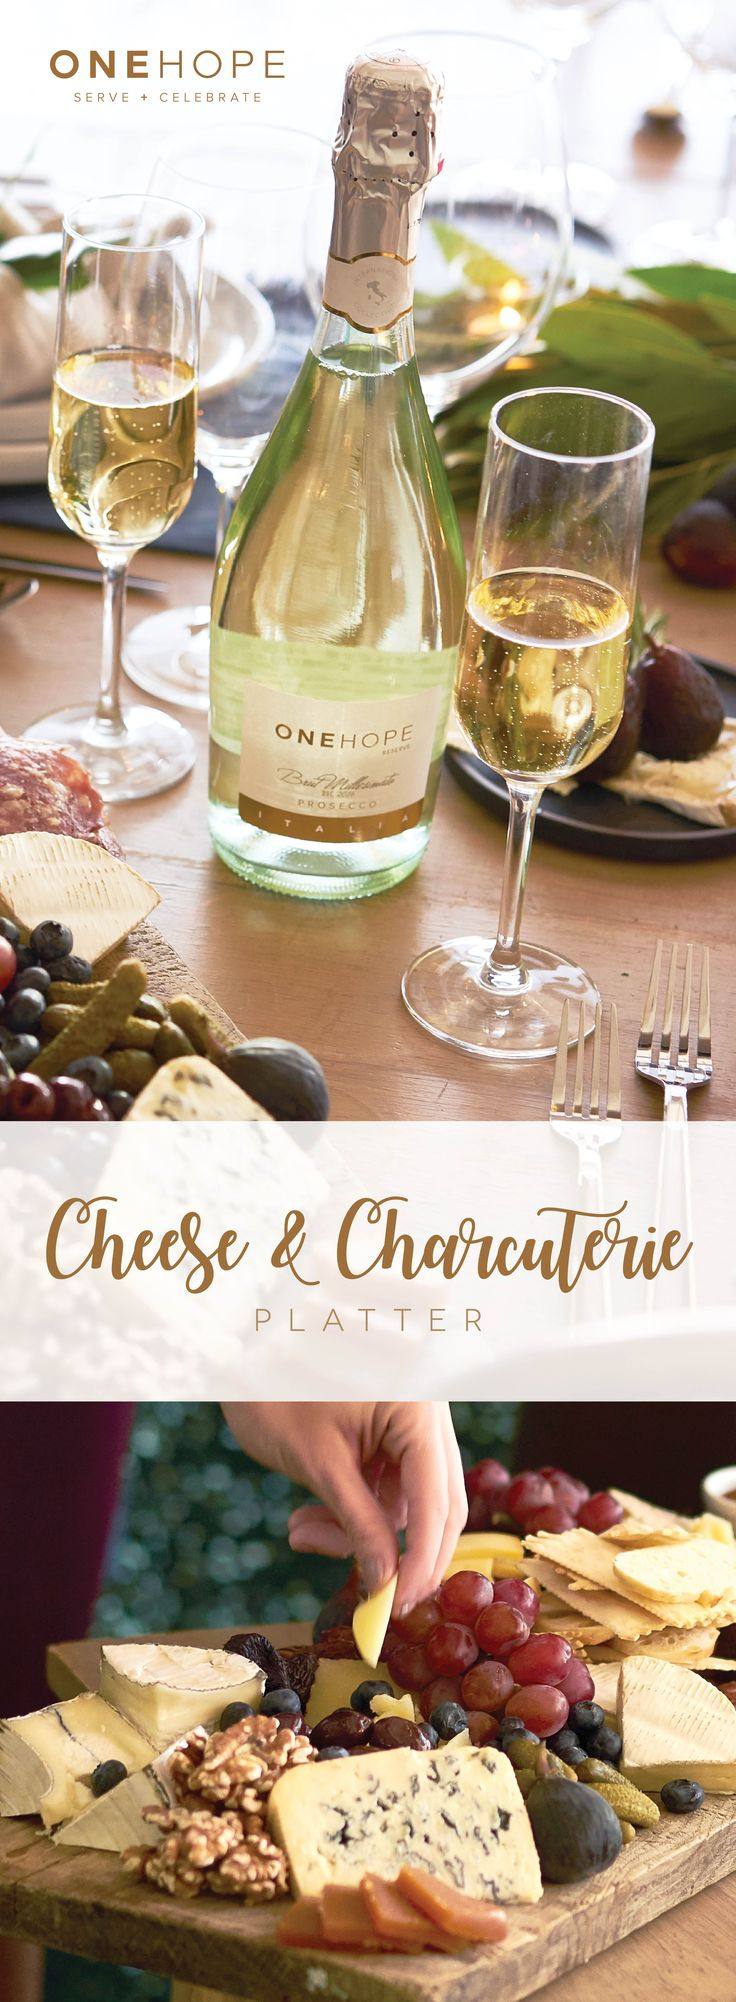 Who doesn't love a good cheese and charcuterie platter? We created one that's perfect for the holidays. Pair this dish with our Italian Prosecco, which has tasting notes of fresh pear and hints of green apple and creates pleasing aromas that persist into the finish.